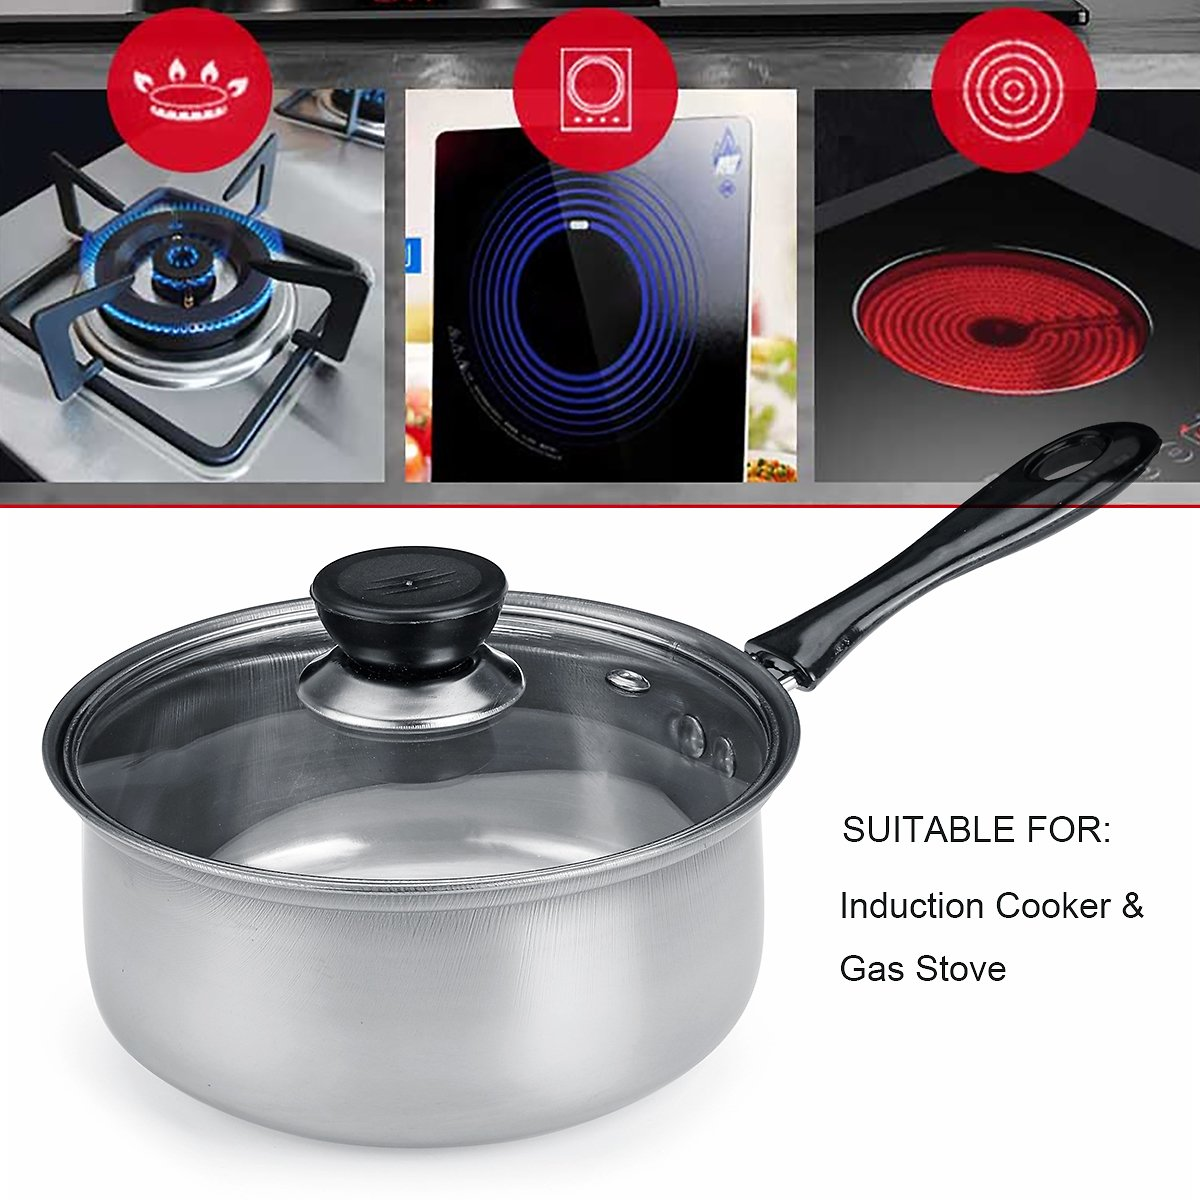 16cm Cooking Pot Steam Pot Thickening Hot Milk Pan Noodles PotHome Kitchen Cookware Tool Stainless Steel